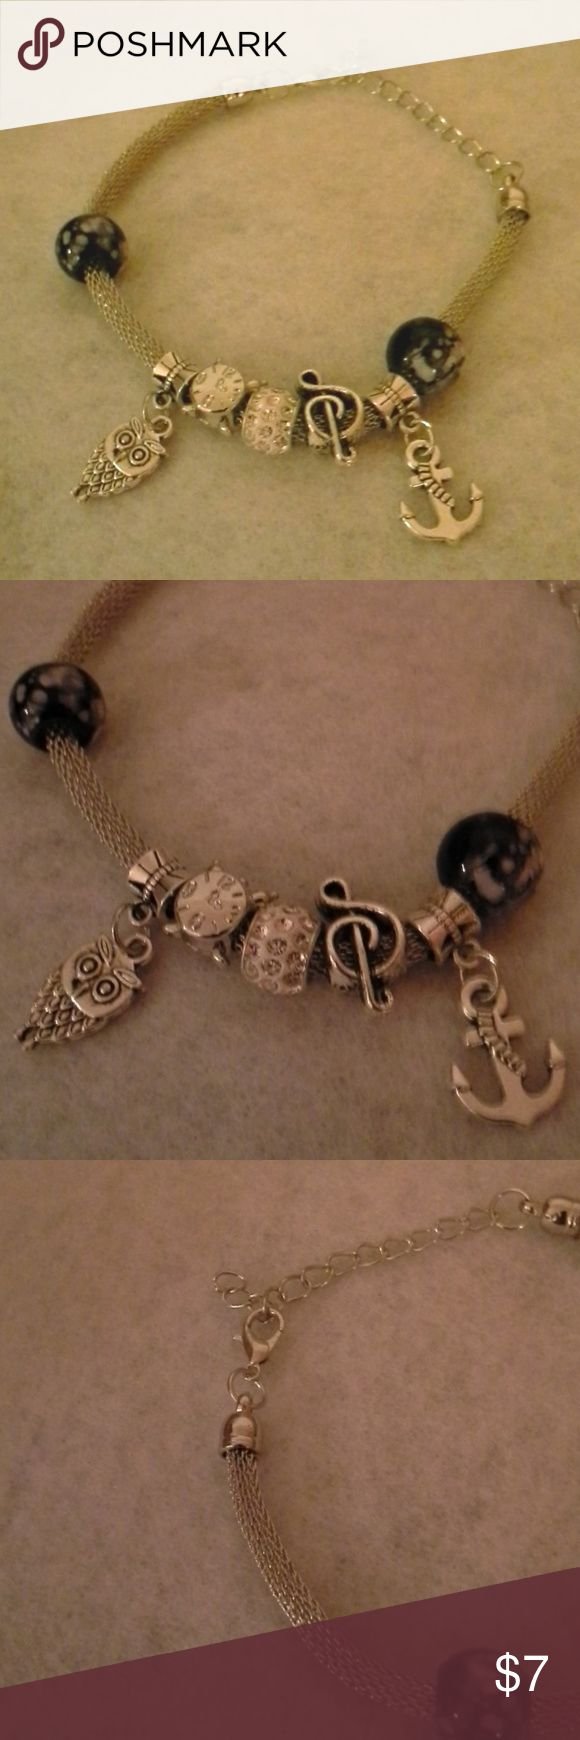 Charm bracelet Cute and whimsical charm bracelet with two black and white patterned circles featuring pretty charms of an owl, musical note, anchor, and alarm clock; lightweight feel; lobster clasp with adjustable chain; too cute to miss; great condition Jewelry Bracelets